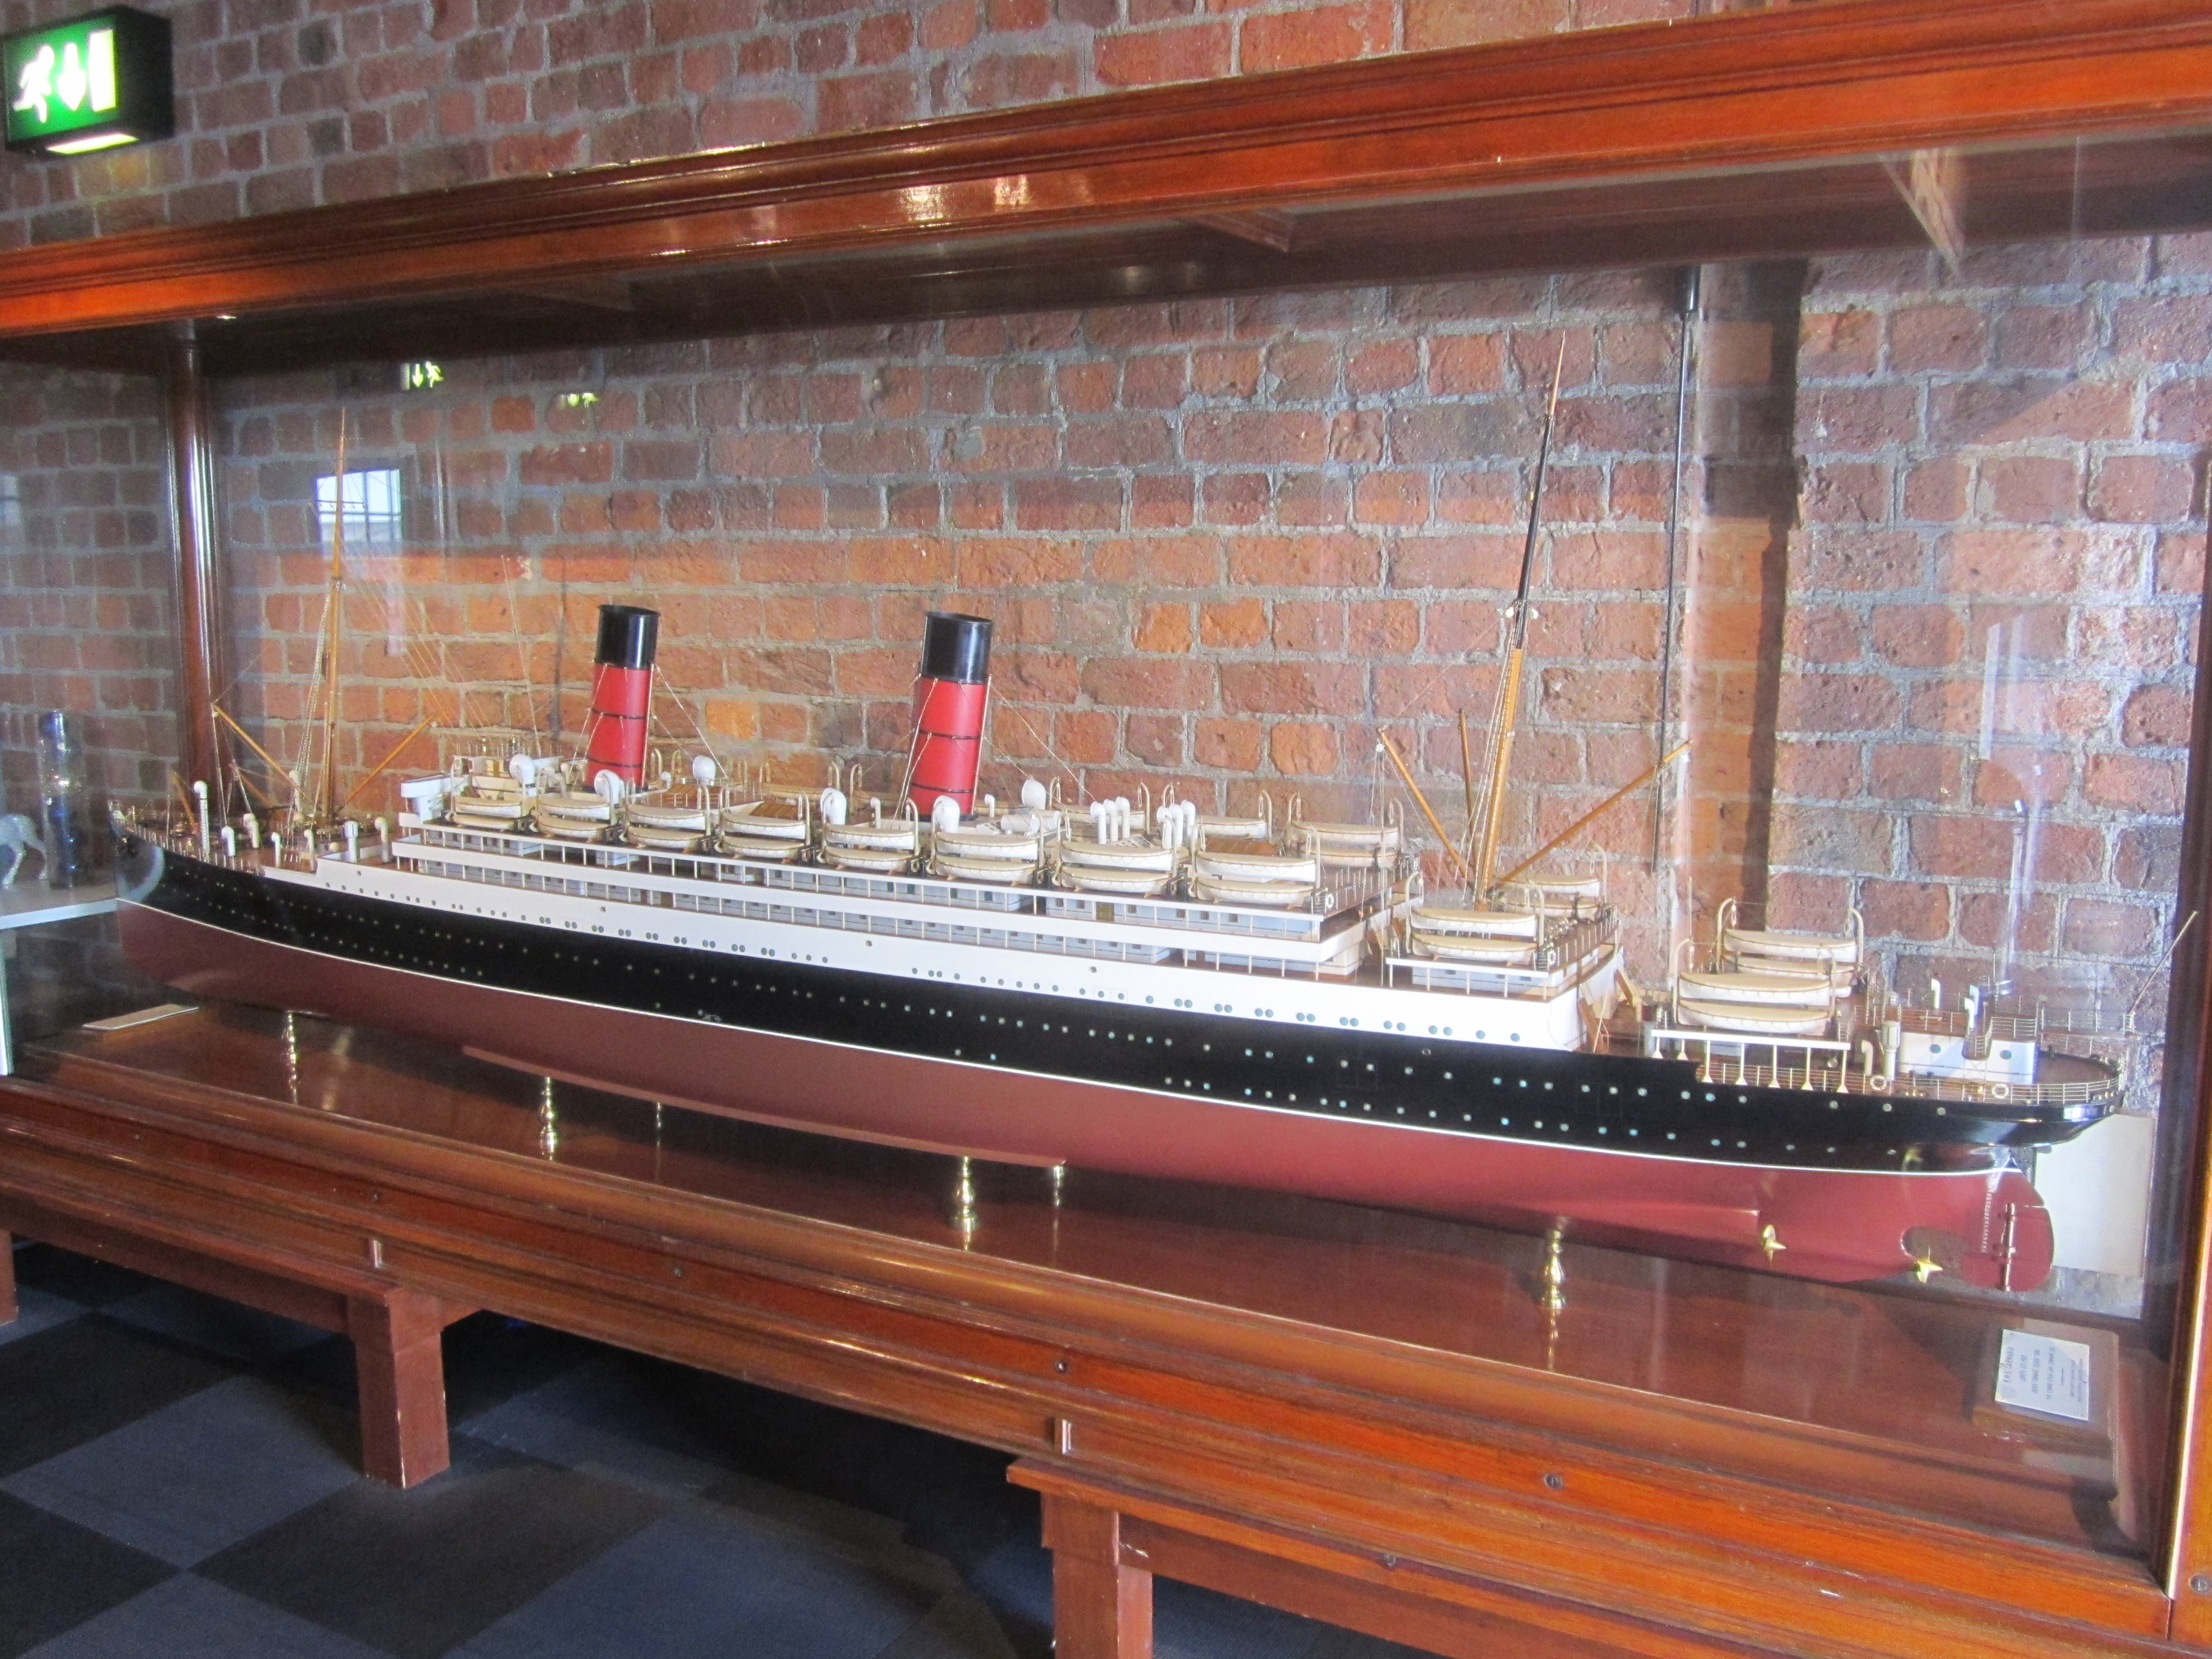 A model ship display at the Maritime museum